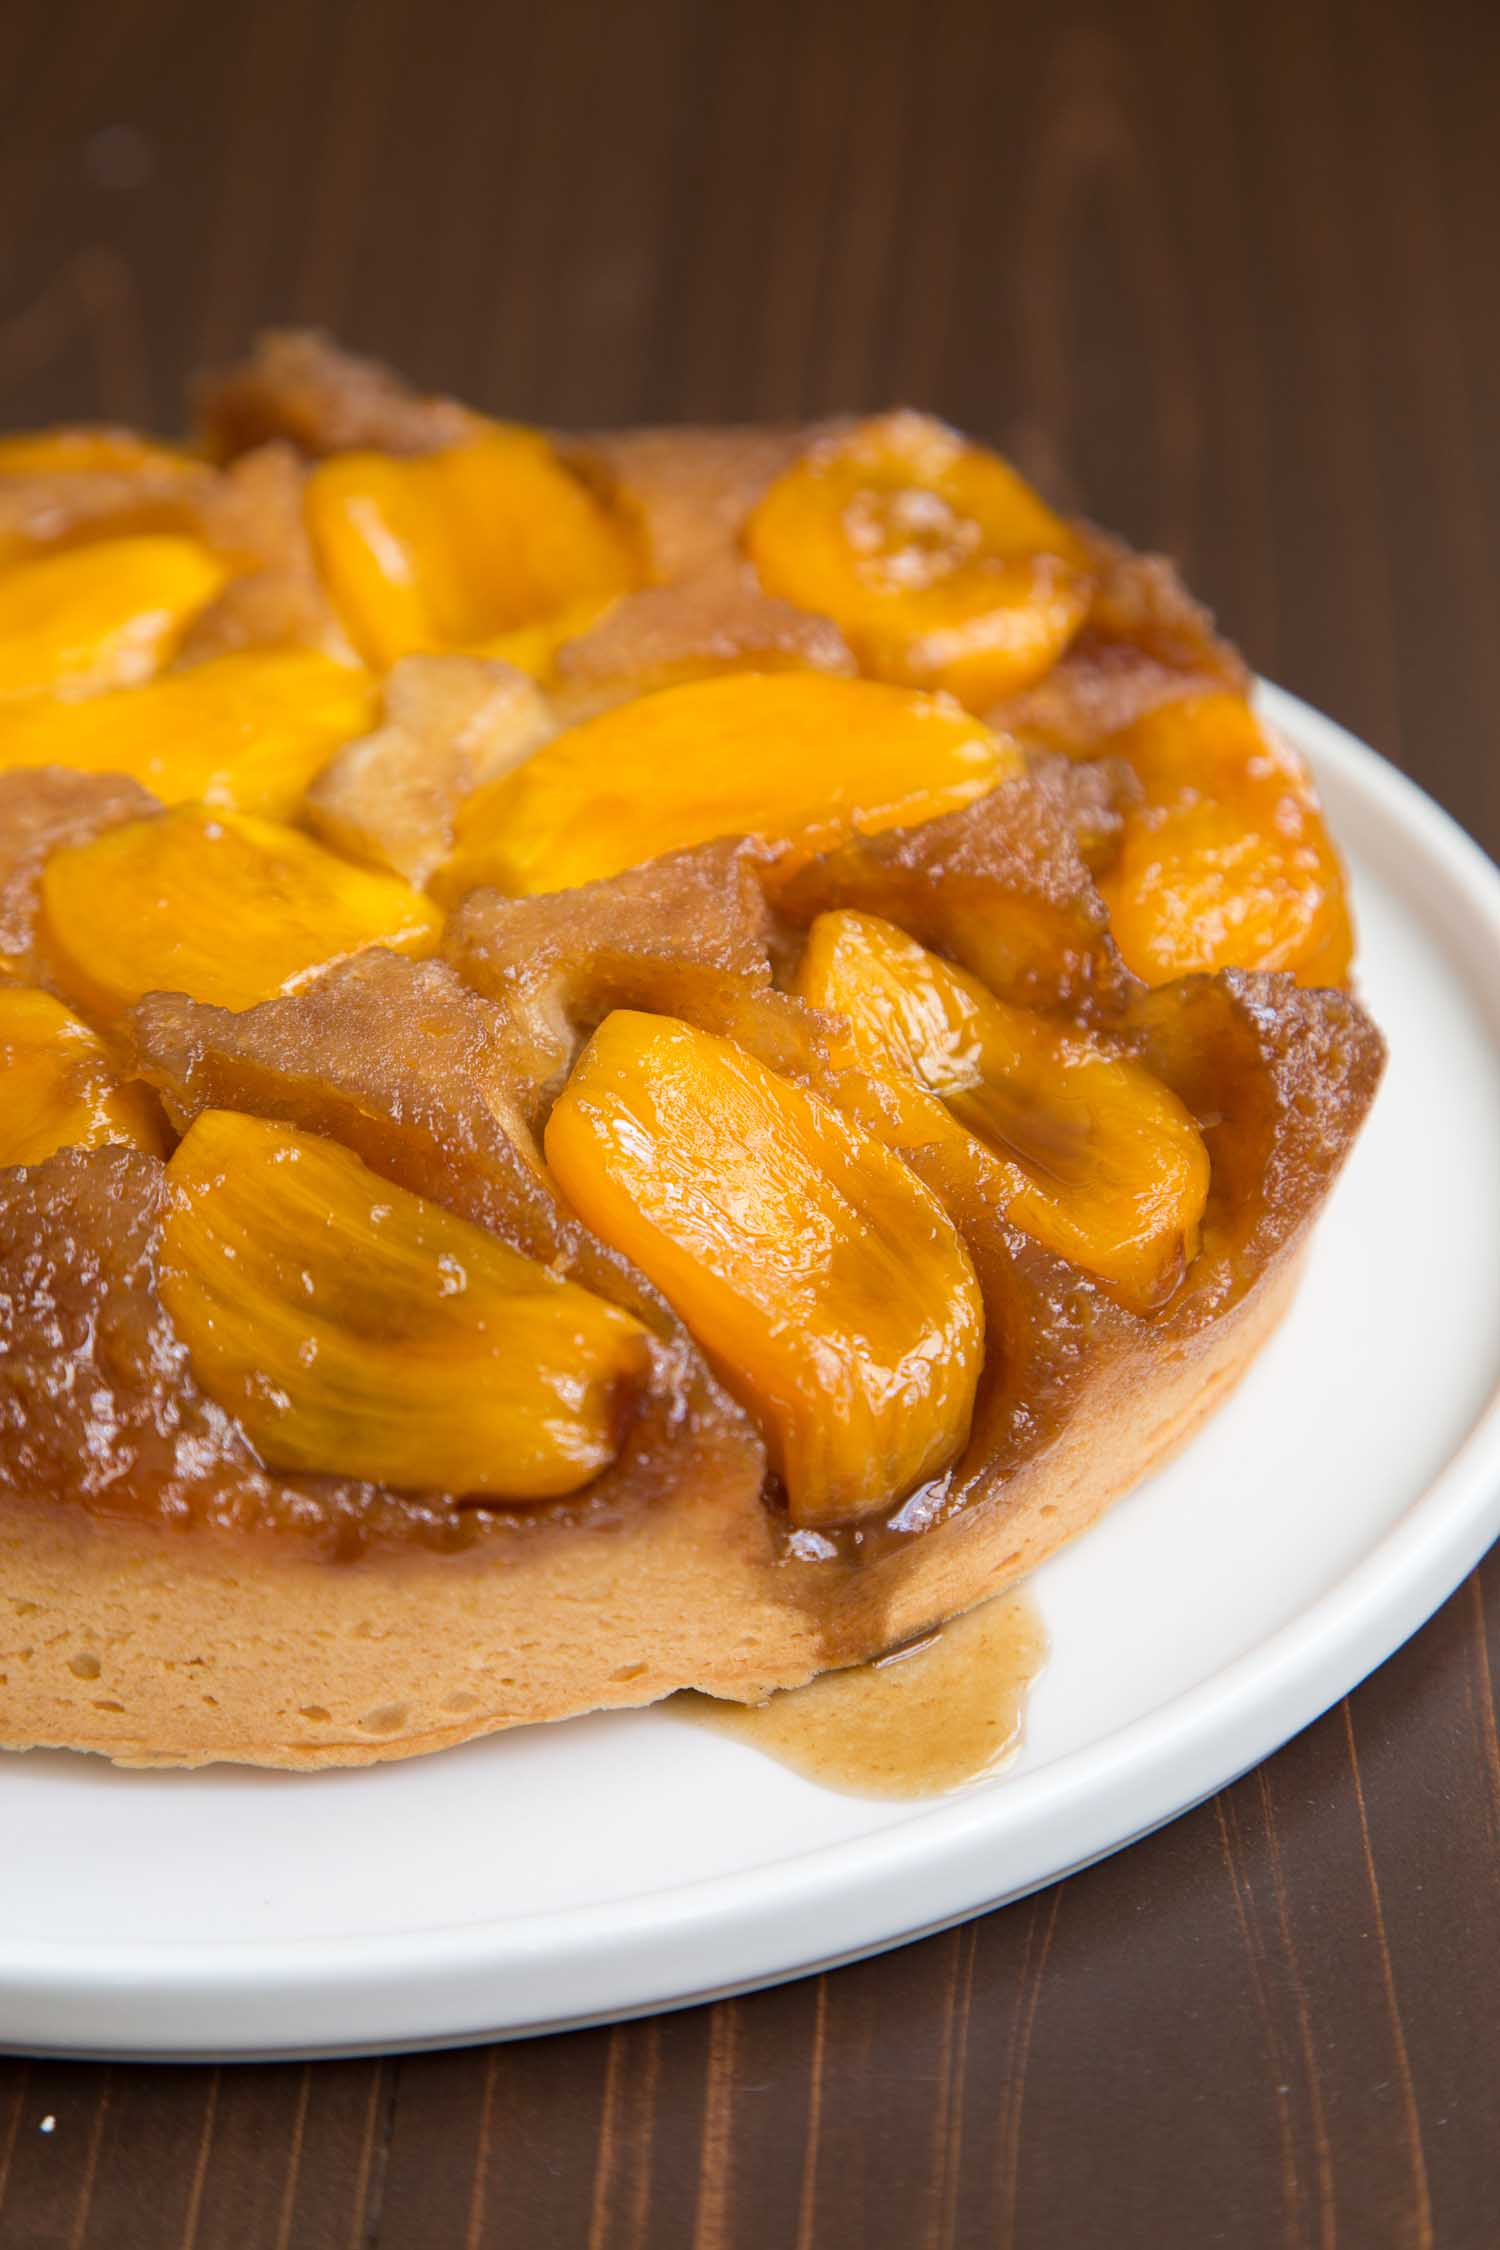 Jackfruit Upside Down Cake